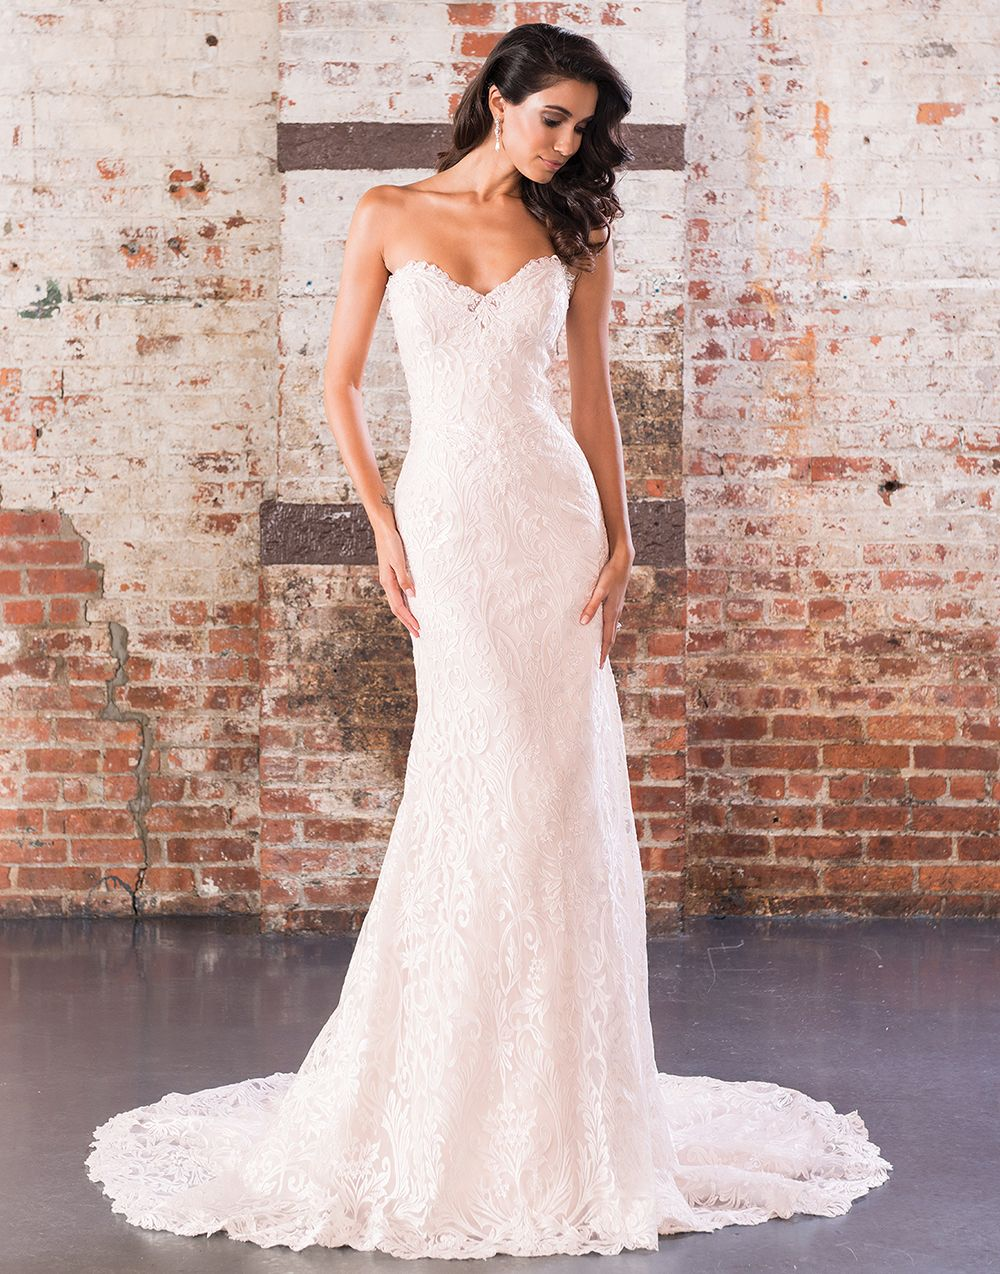 Justin Alexander signature wedding dresses style 9857 | Wedding ...